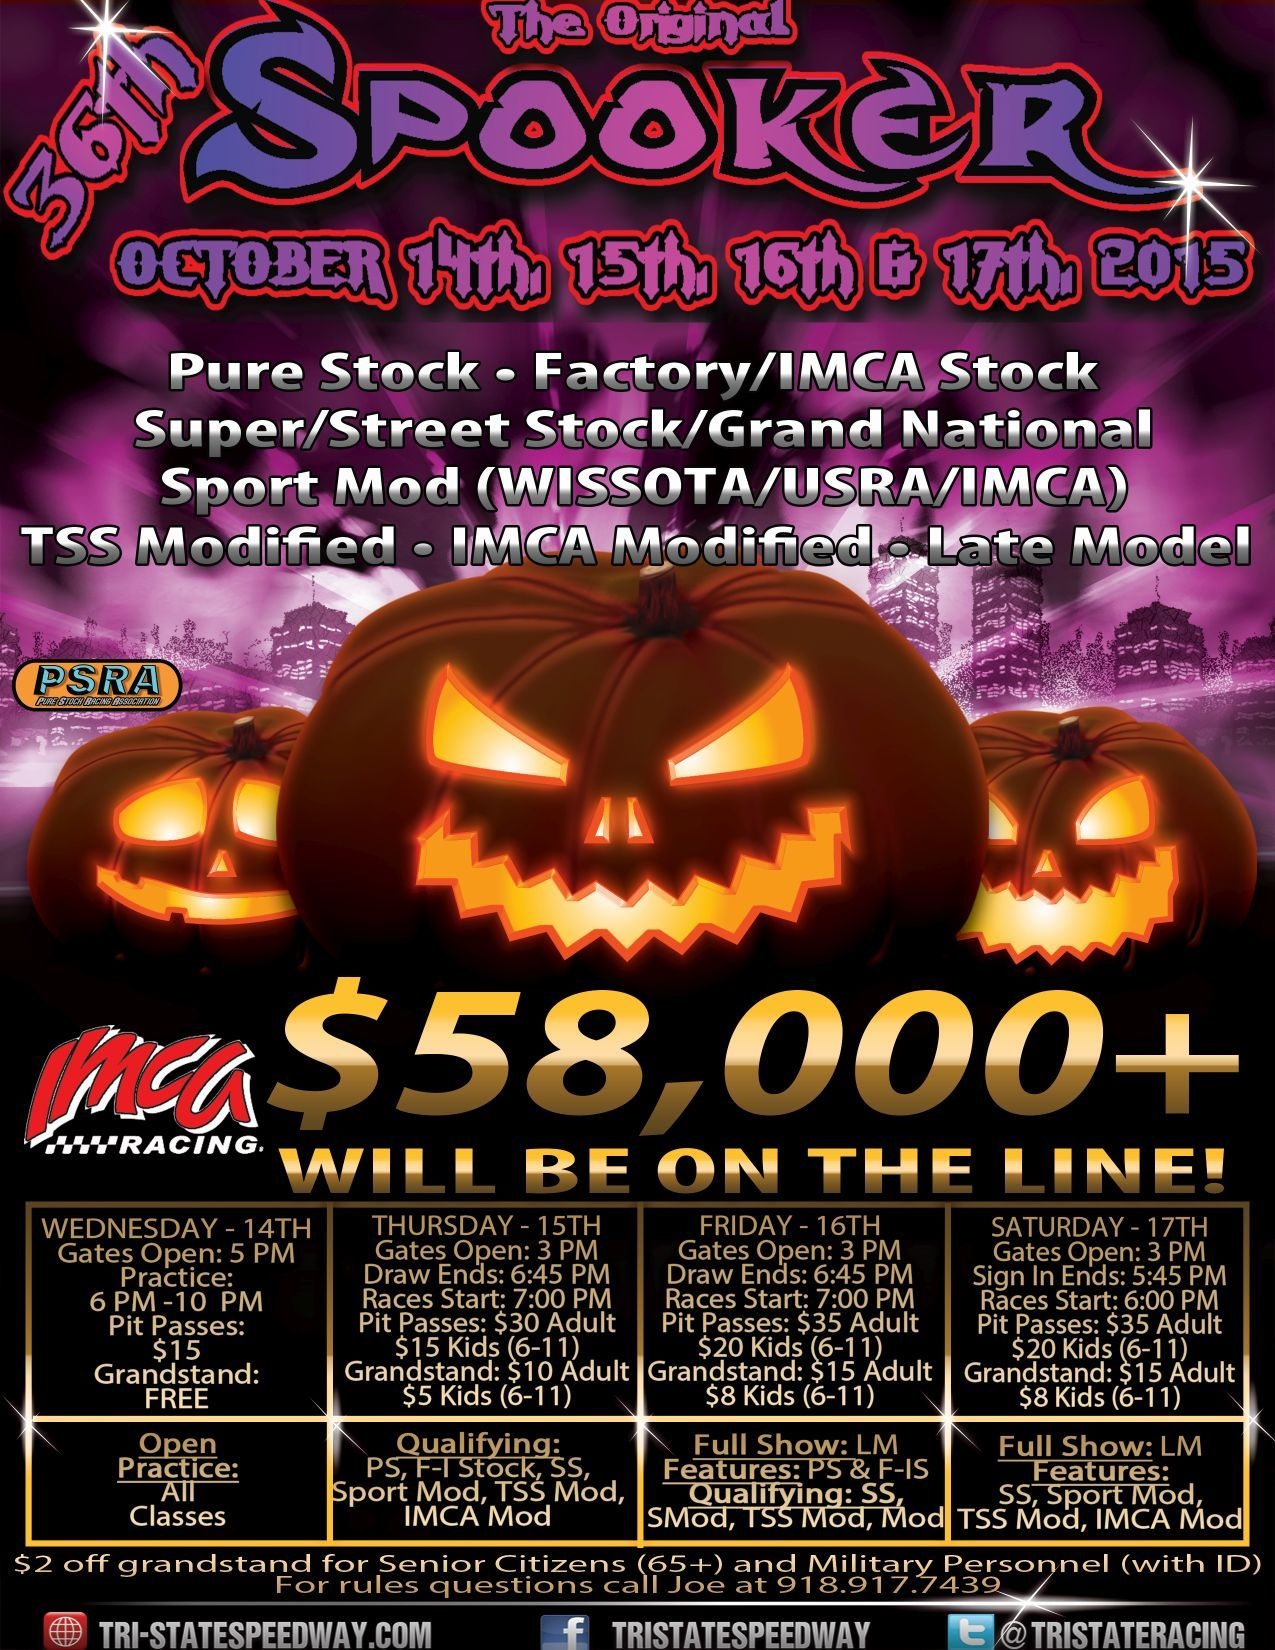 Information Released for the 36th Annual Spooker at Tri-State Speedway!